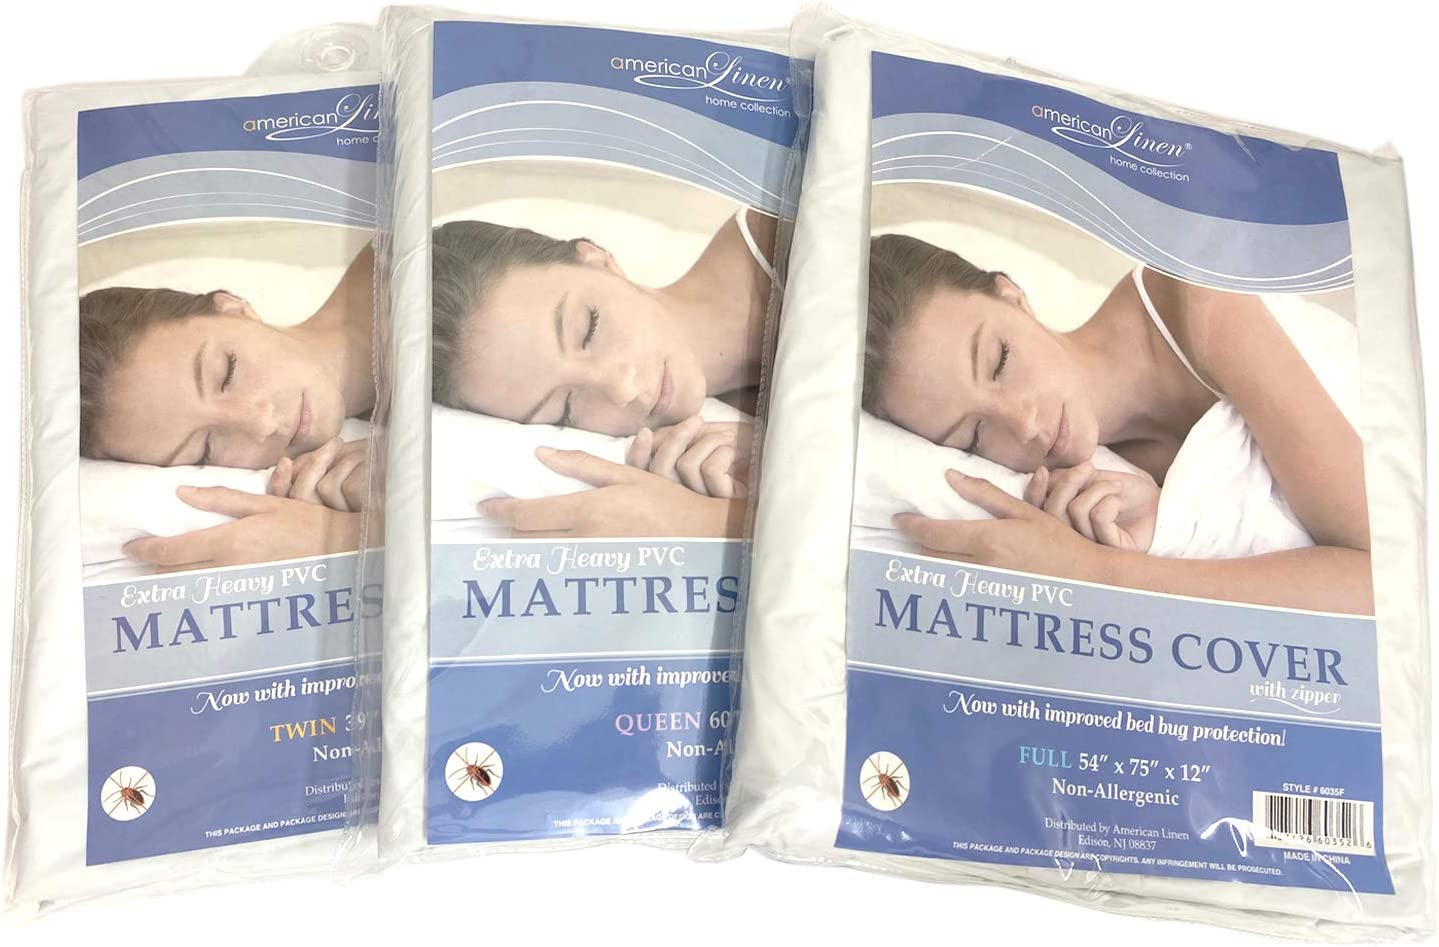 Ranking TOP13 Extra Heavy PVC Award-winning store Mattress Cover Zipper with Improved Now Bed